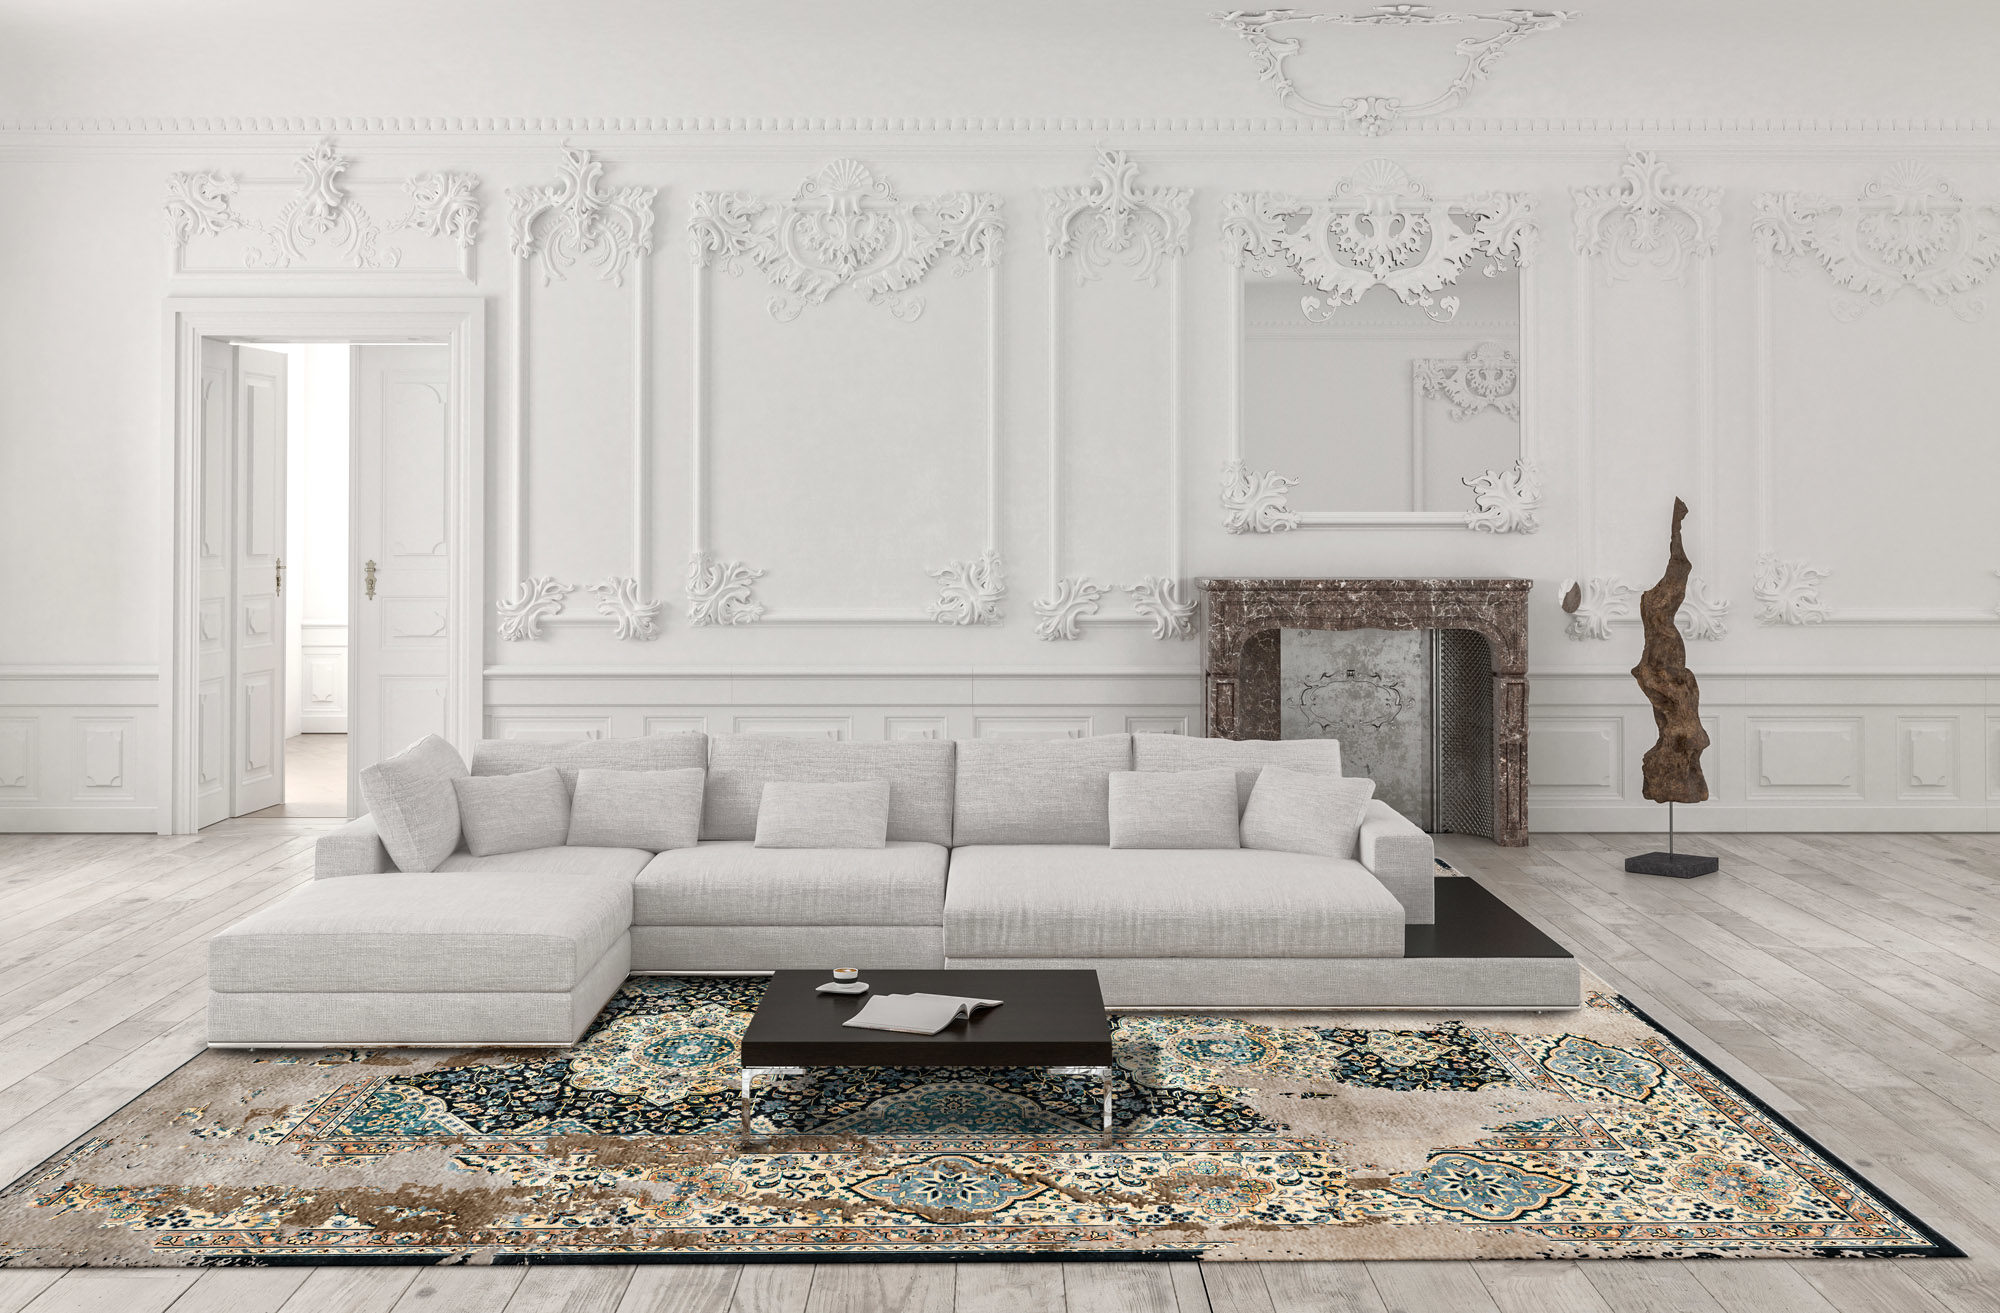 Interior of modern room with persian rug 3D rendering